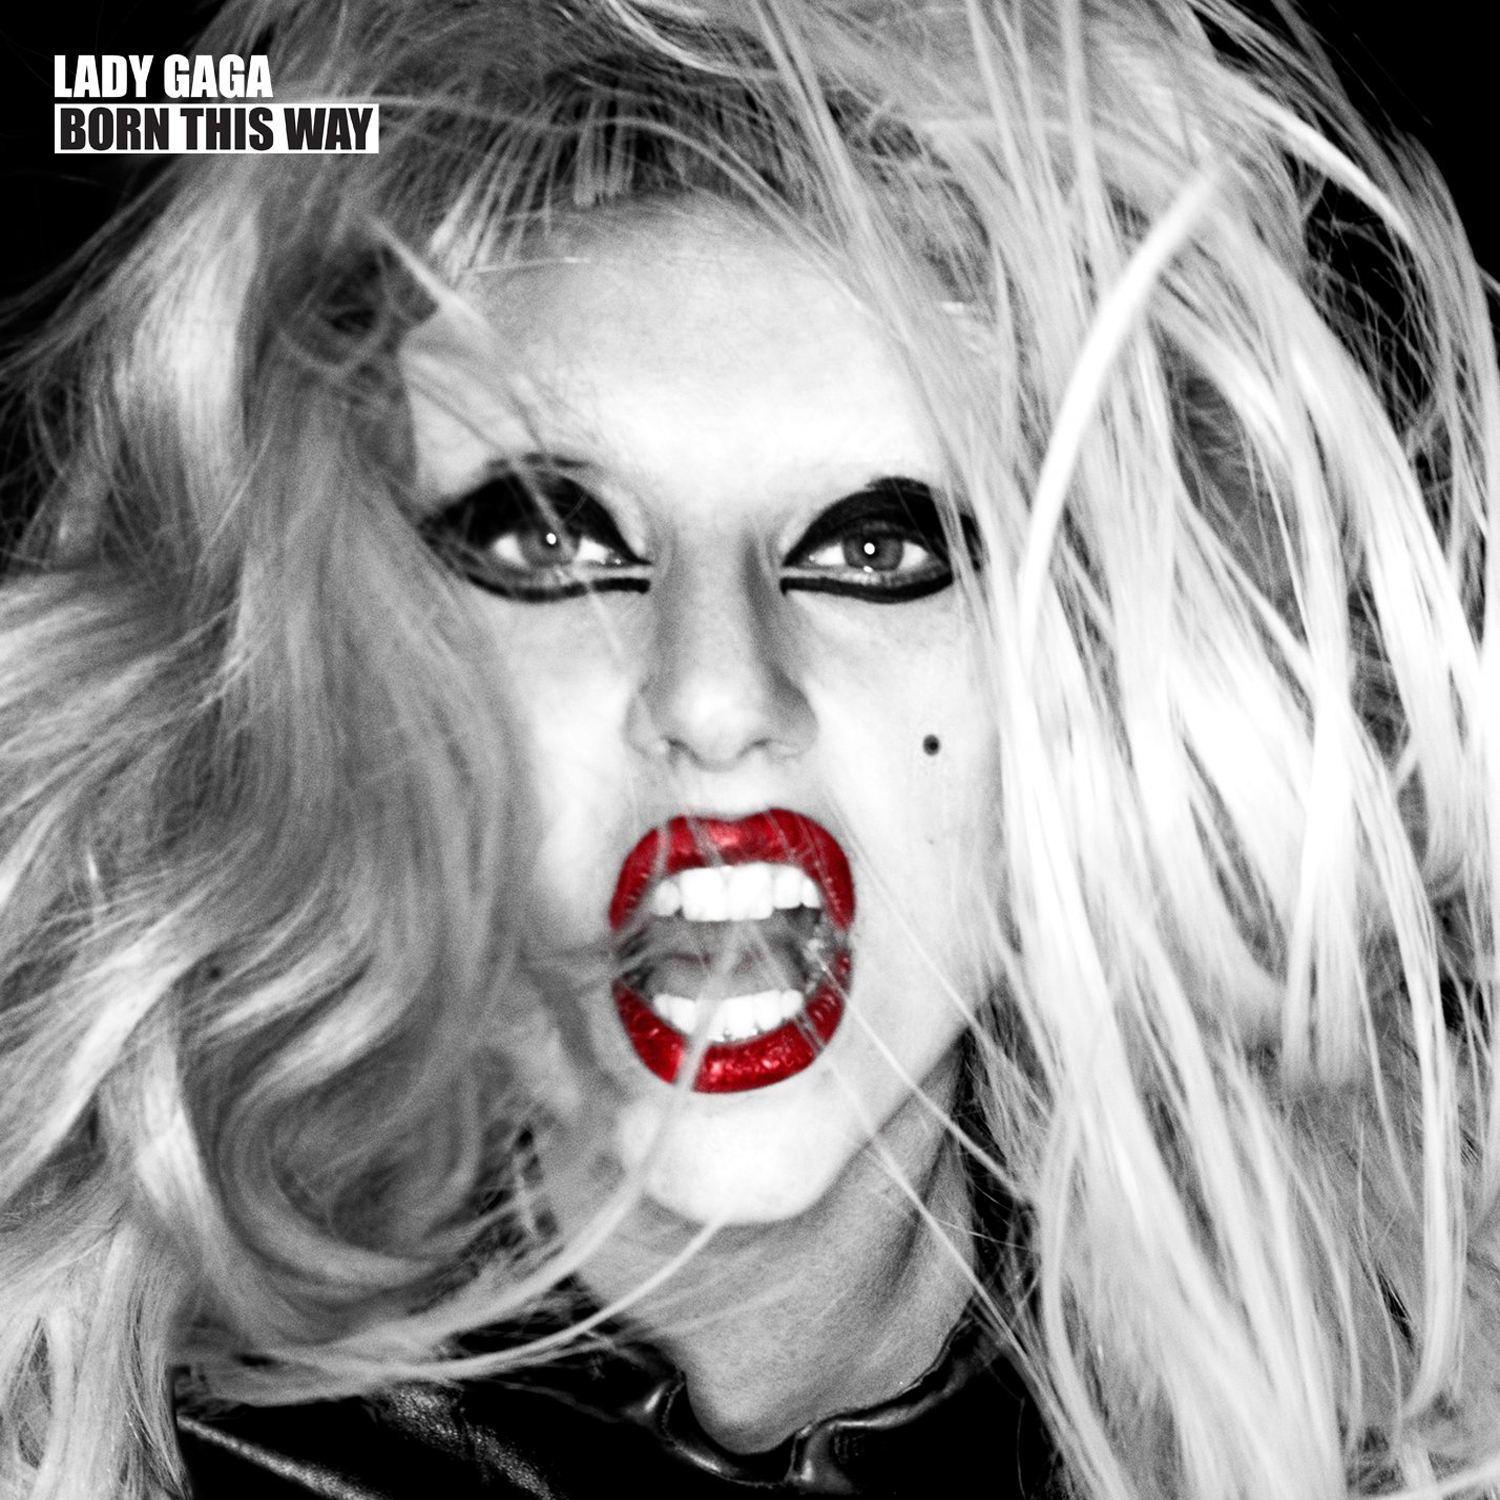 http://1.bp.blogspot.com/-f4dFFaLyVTk/Ty9wcDfzDNI/AAAAAAAABJI/_tOh73sse3Y/s1600/Lady-GaGa-Born-This-Way-Official-Album-Cover-Deluxe-Edition%2BNormal.jpg